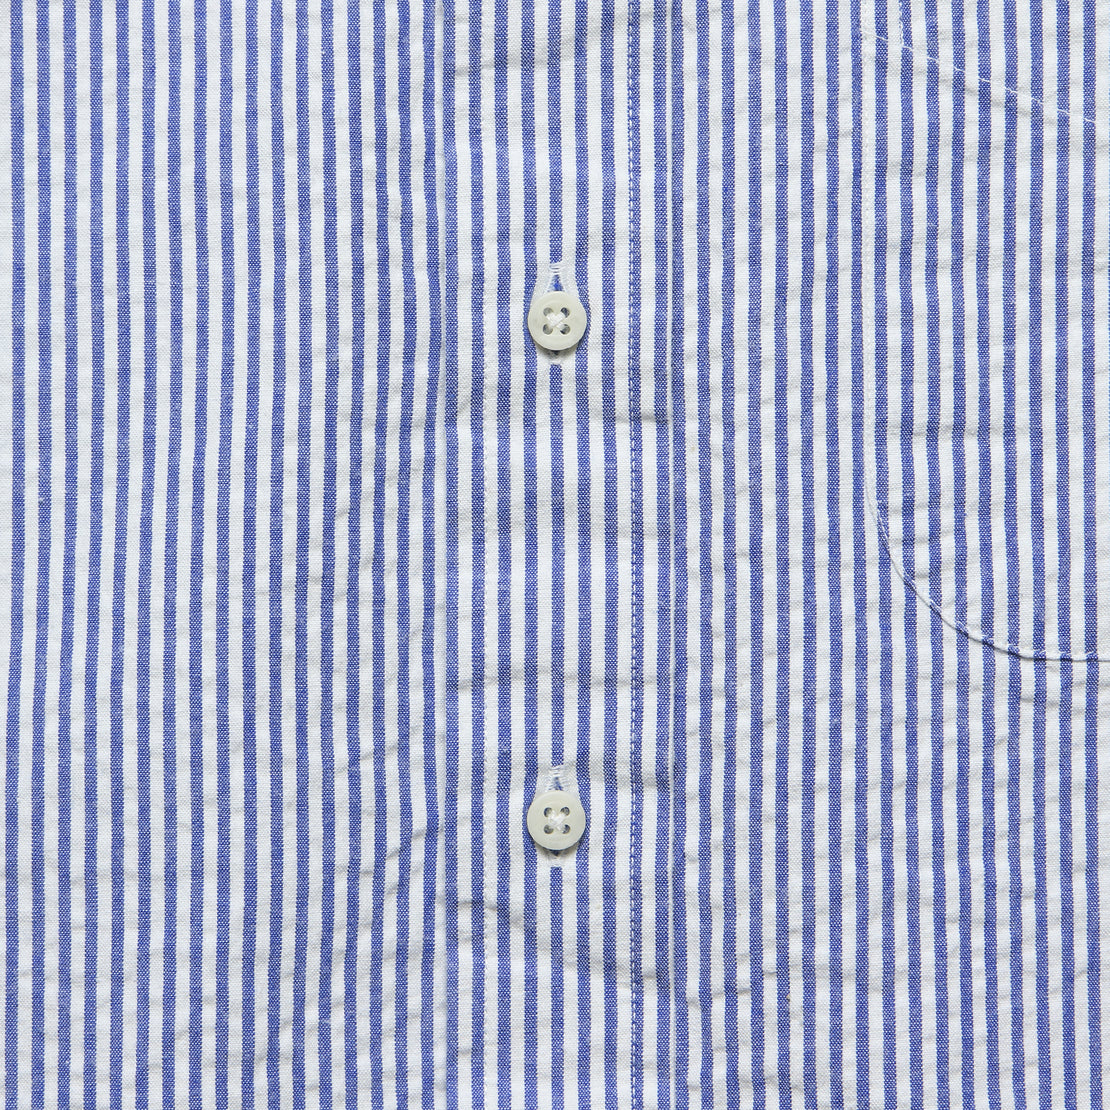 Seersucker Shirt - Blue/White Stripe